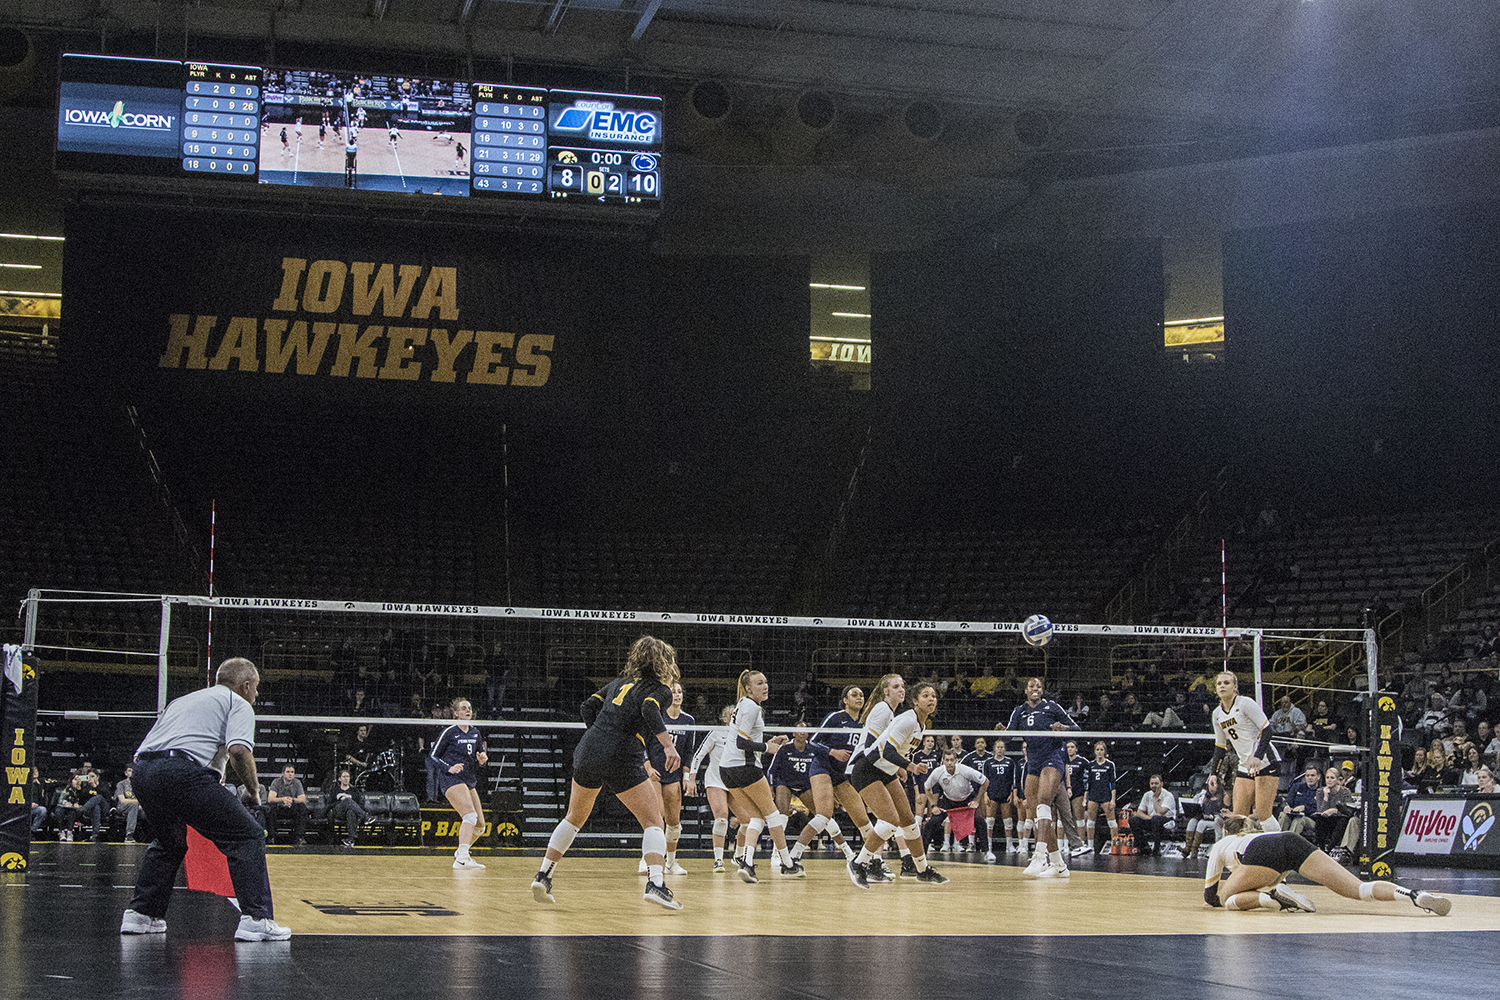 Iowa+players+react+to+the+ball+during+a+volleyball+match+between+Iowa+and+Penn+State+at+Carver-Hawkeye+Arena+on+Saturday%2C+Nov.+3%2C+2018.+The+Hawkeyes+were+shut+out+by+the+Nittany+Lions%2C+3-0.